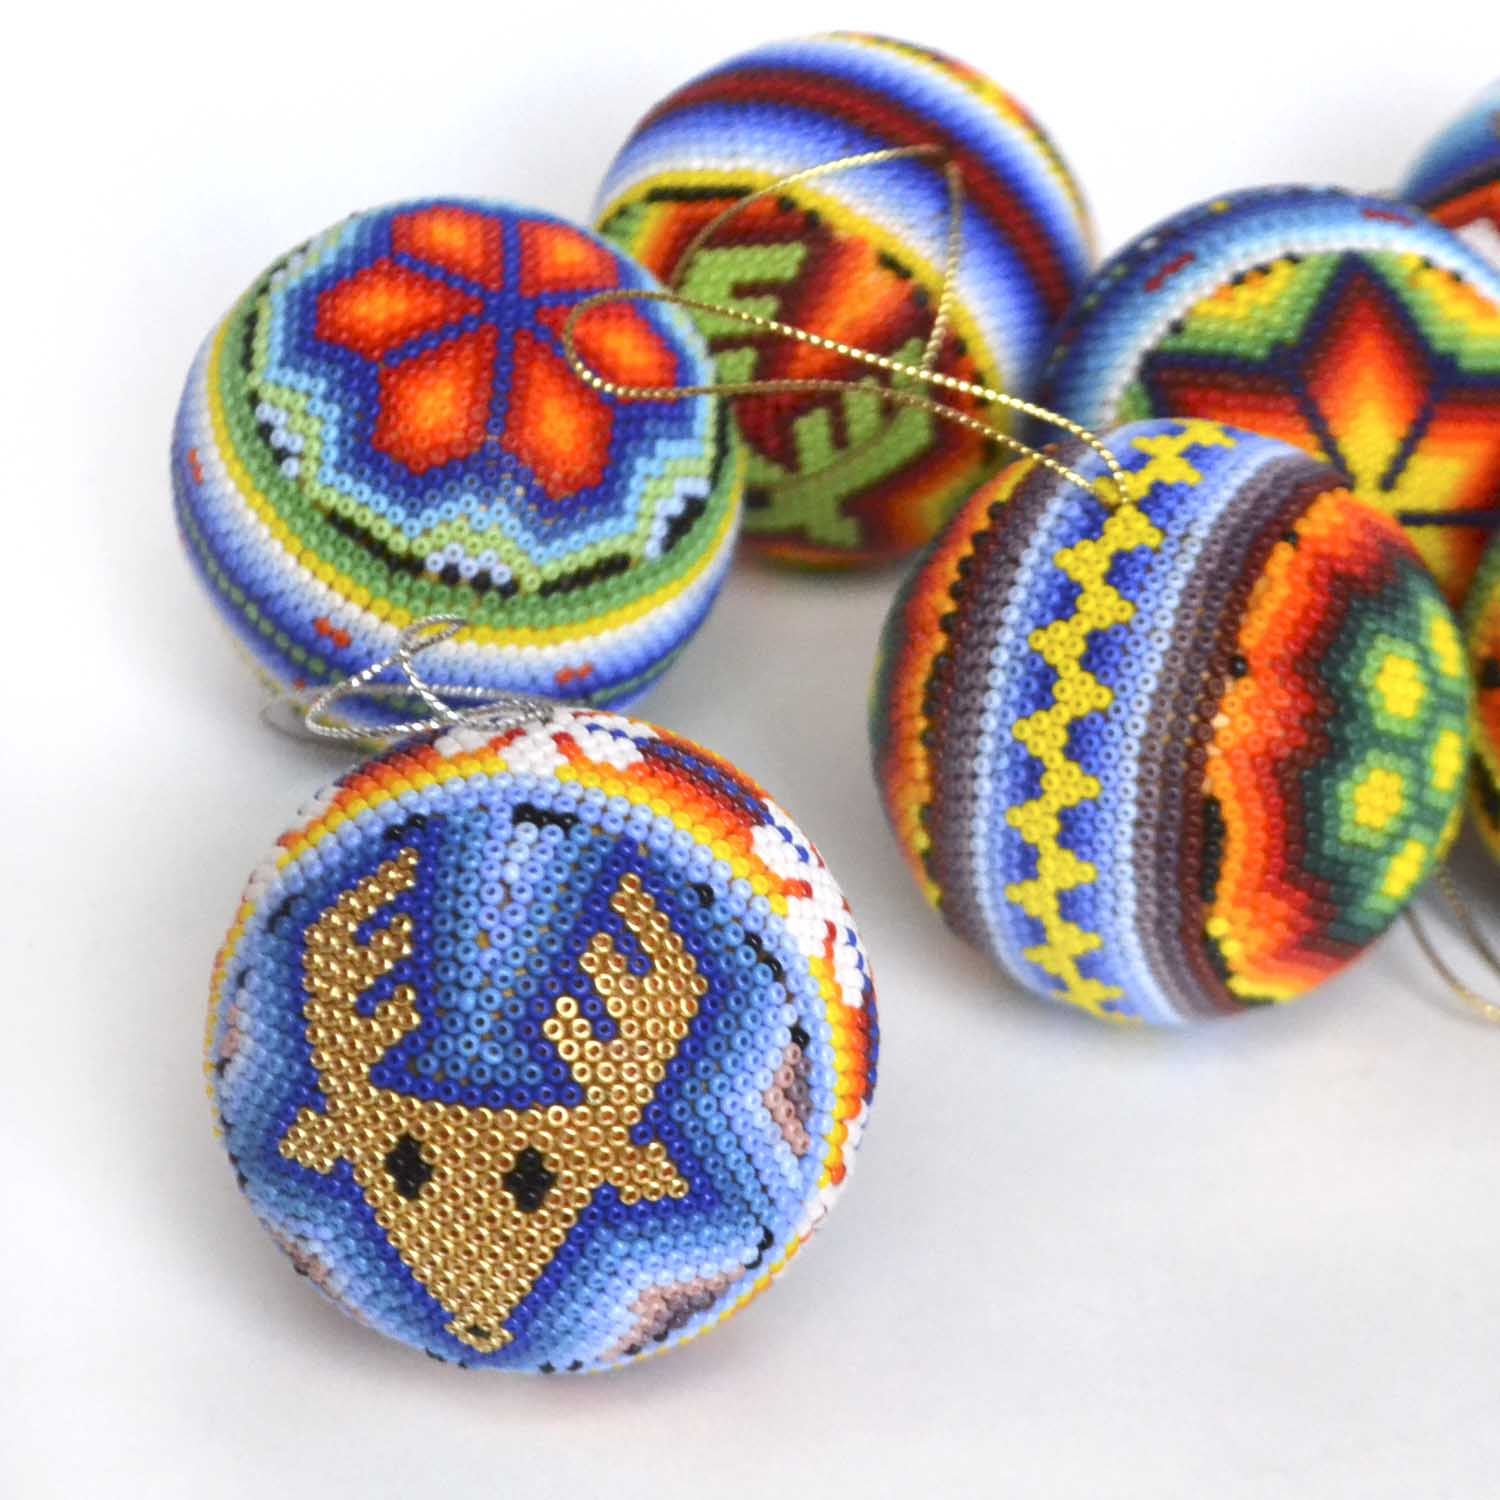 Spheres with beads